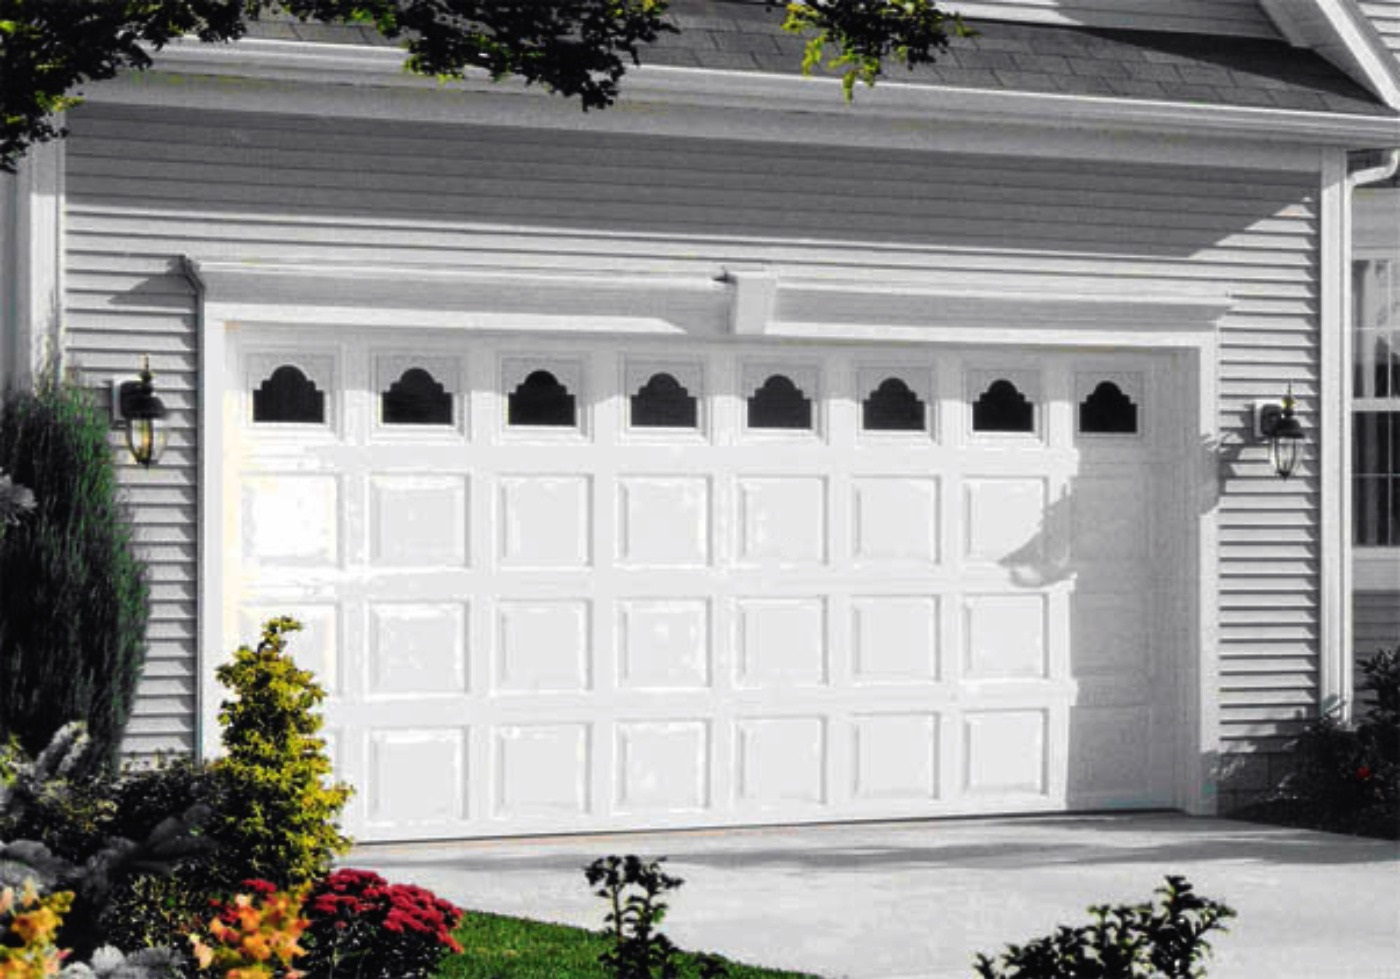 & Chapman Garage Door (951) 272-0343 - Garage Door Repair